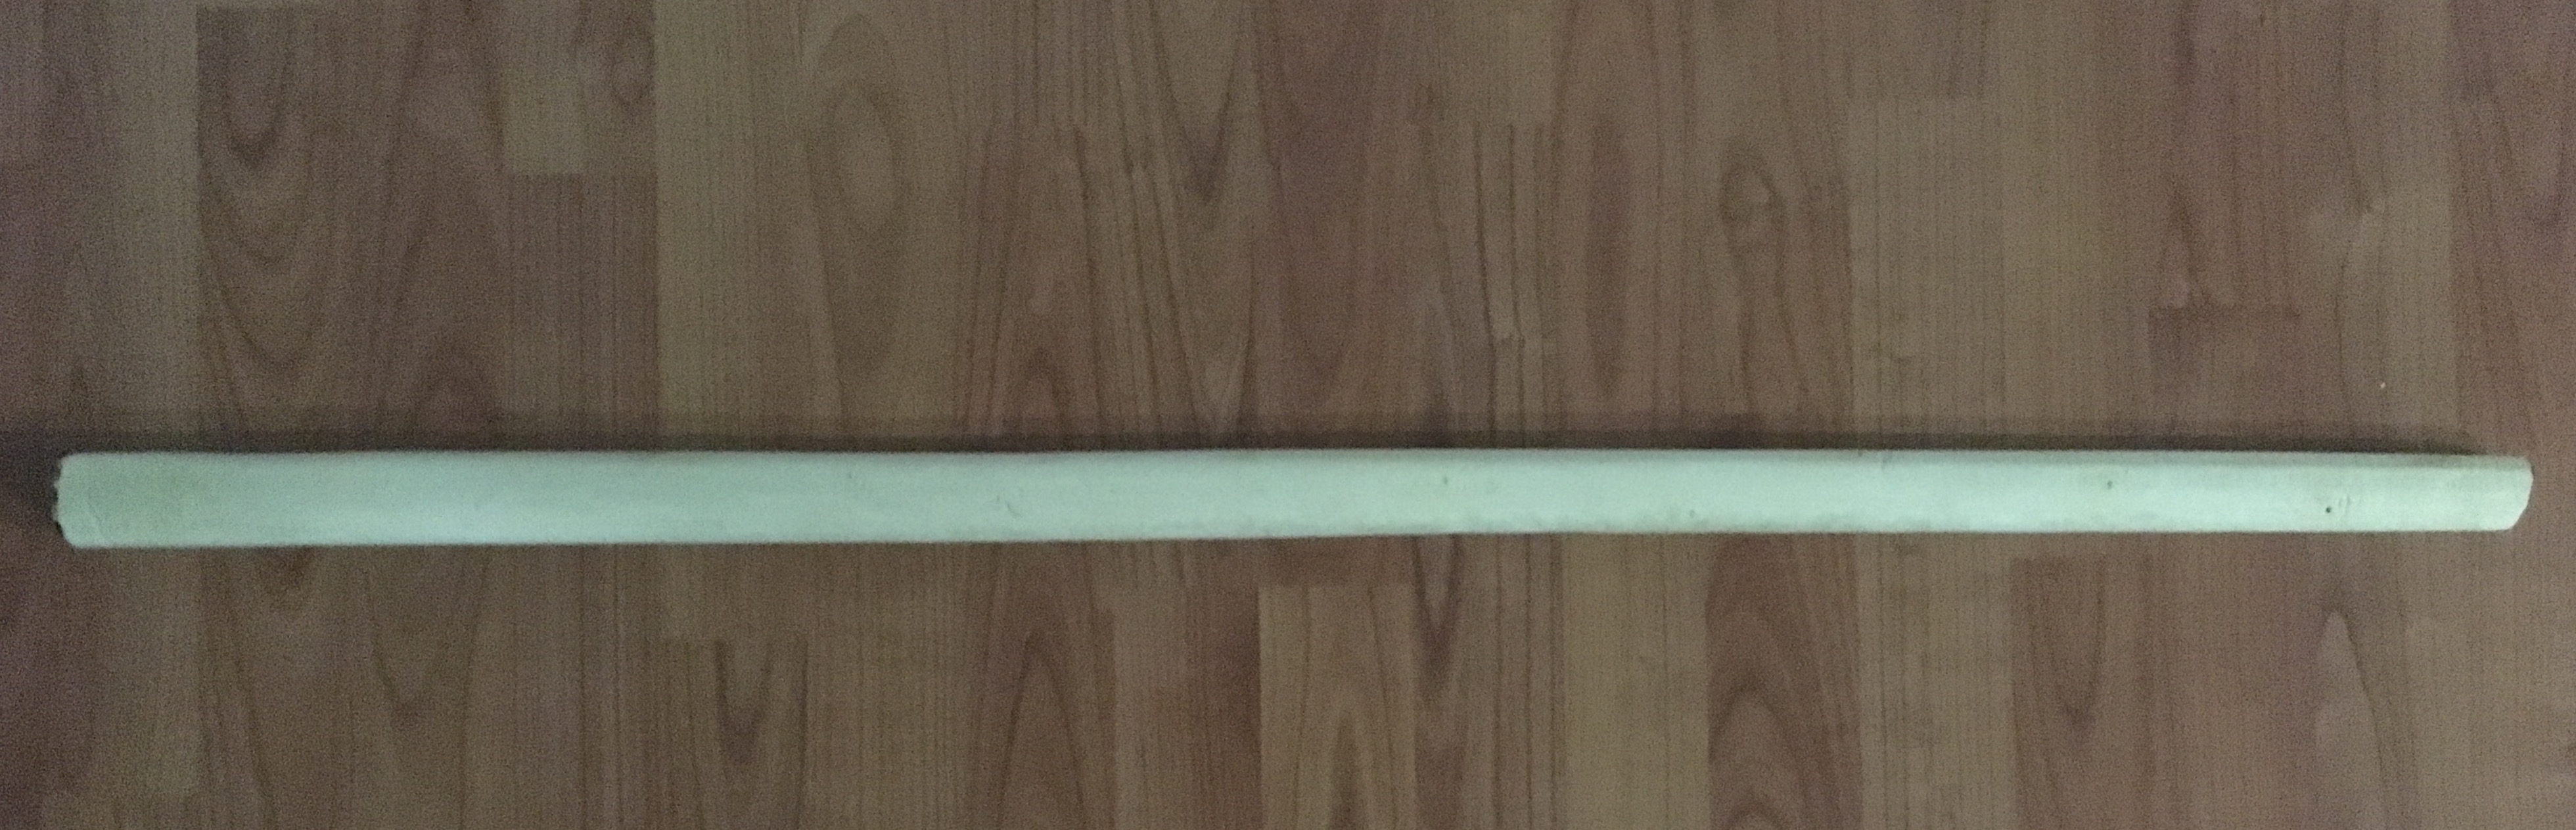 Straight Length To Find Out But This Is A Wonderful Wood For Bokken Quite Diffe In Feel Positive Way From Anything Else I Ve Ever Used